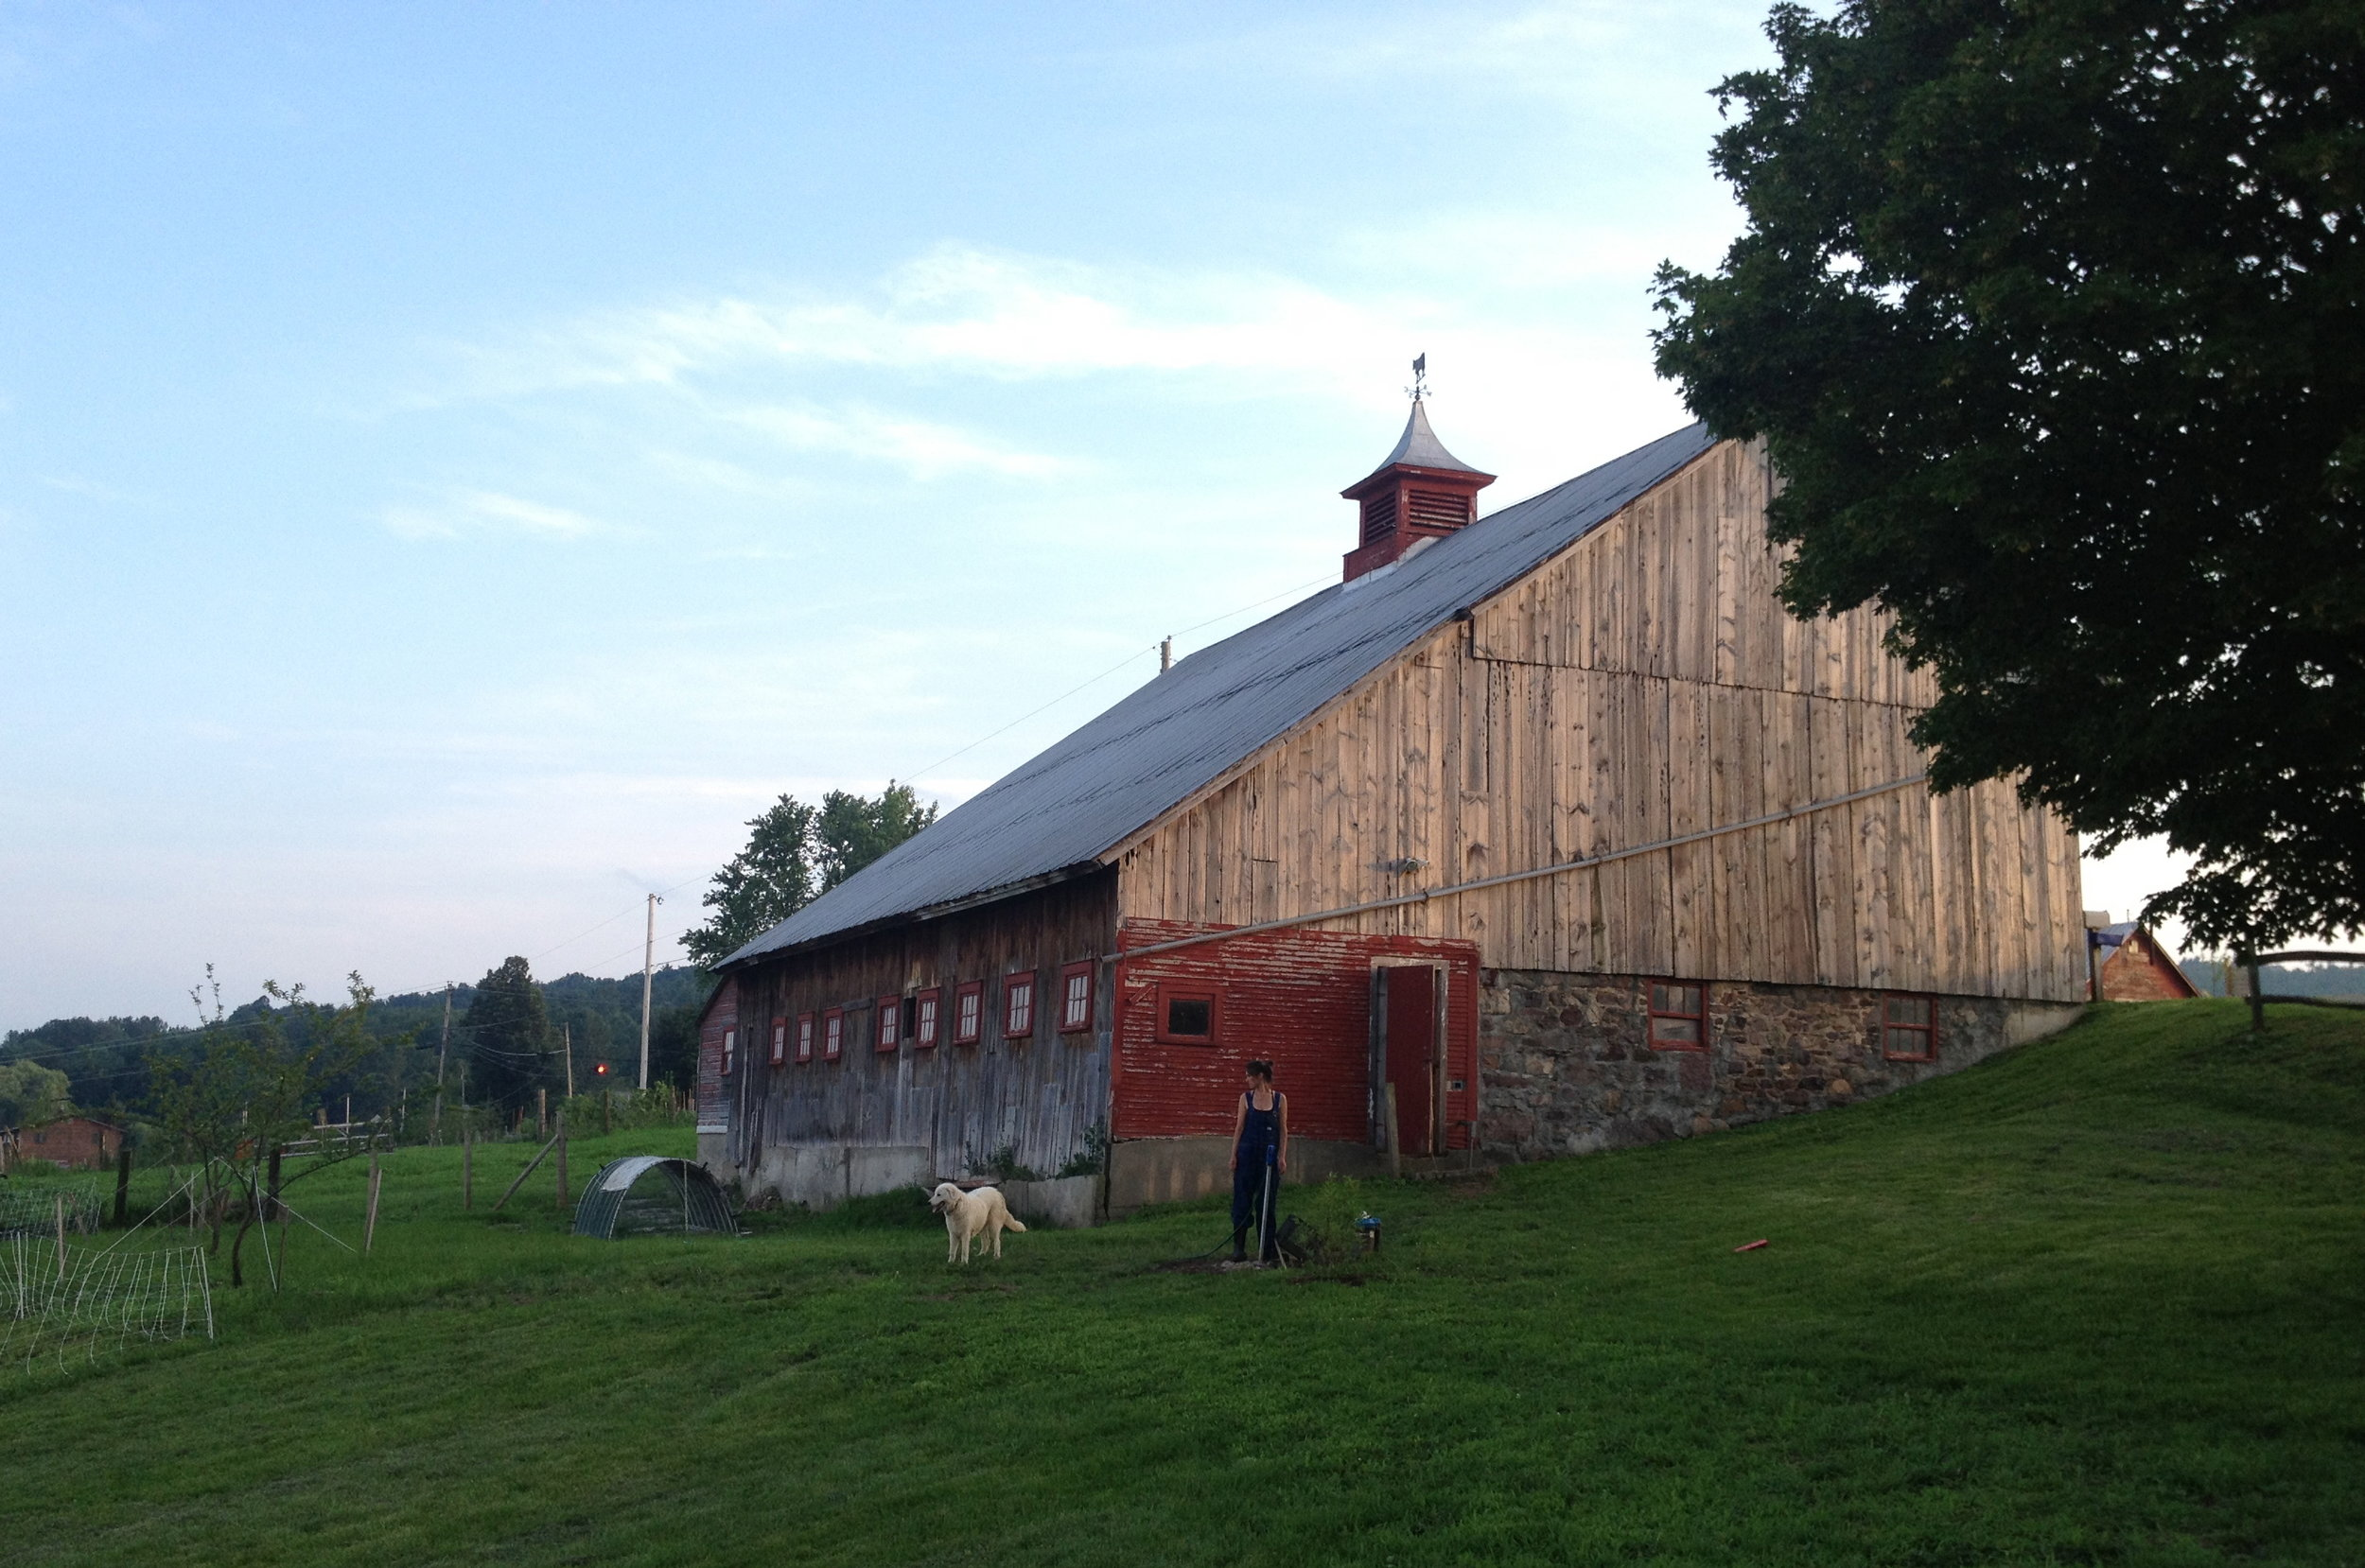 Vera Simon-Nobes (one of our first farmers!) and her sheep dog Aldo standing in front of the Sheep Barn prior to restoration in 2012.